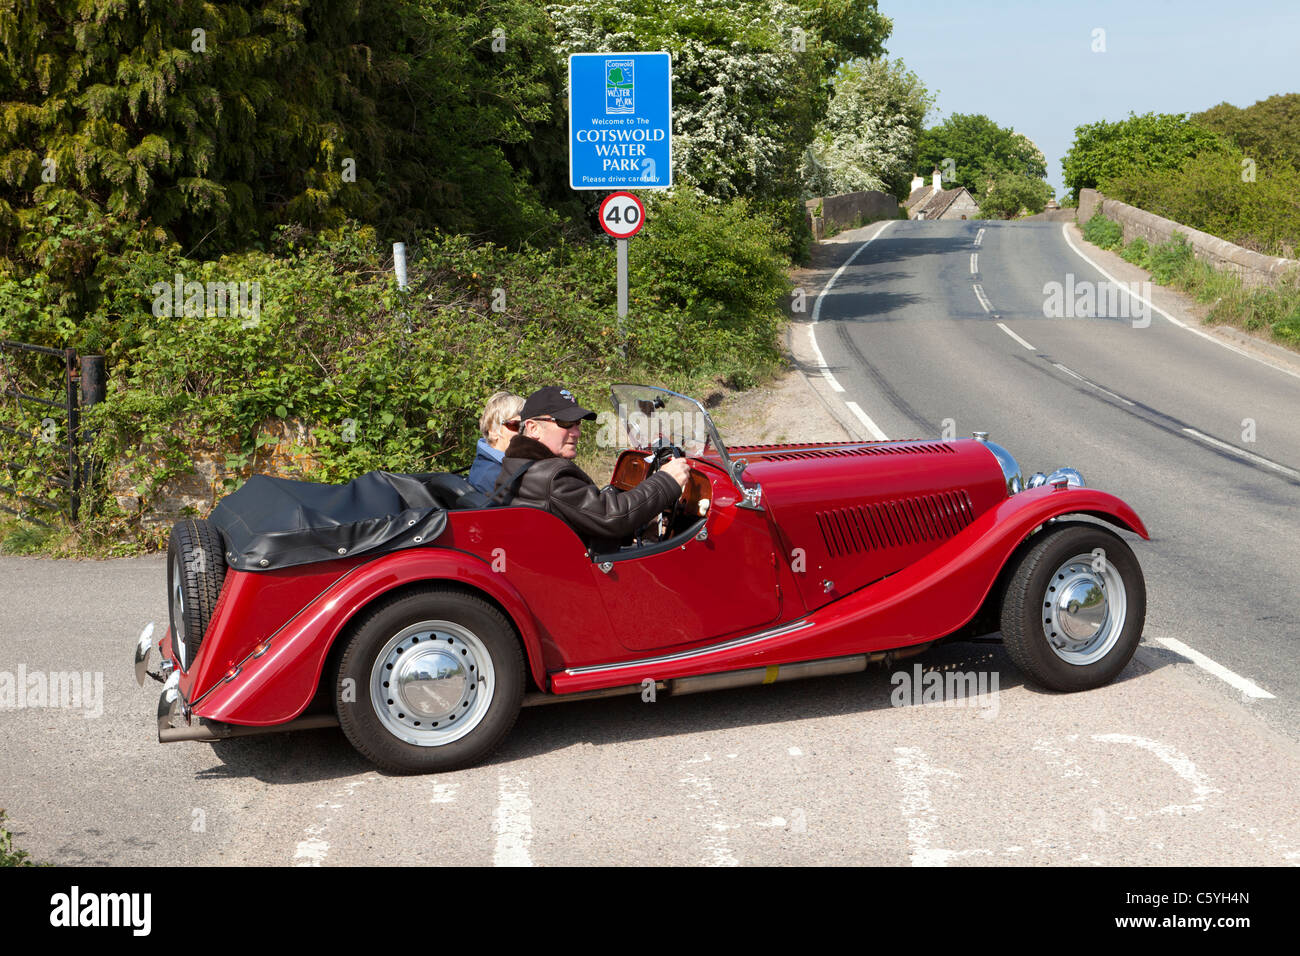 Morgan sports car at the entry to the Cotswold Water Park at St John's Bridge over the River Thames at Lechlade, - Stock Image